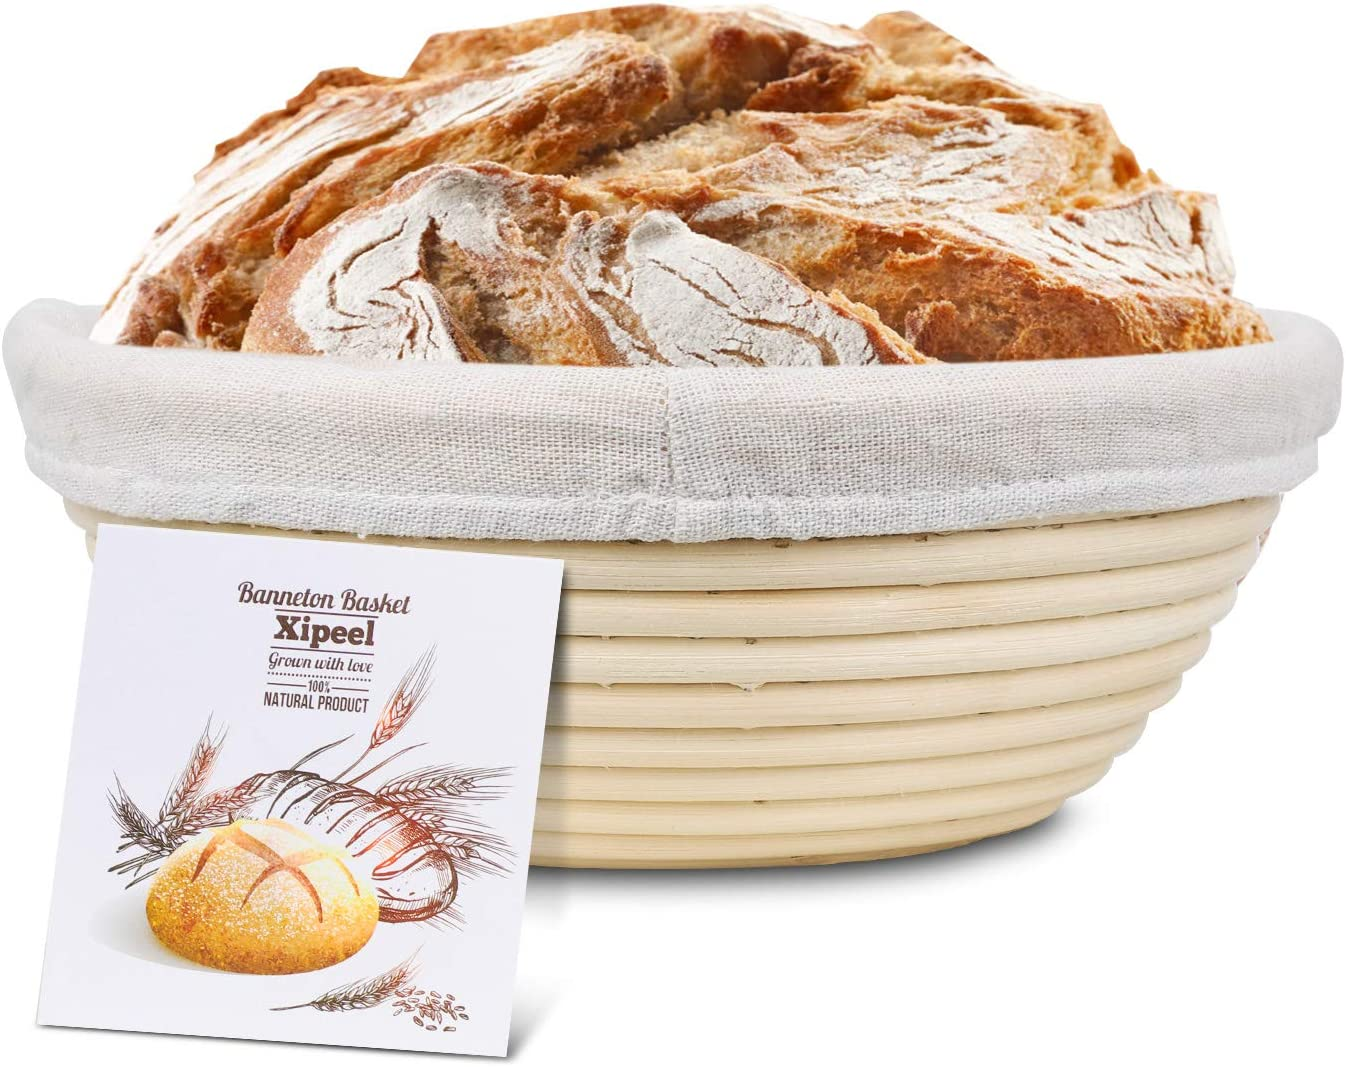 Xipeel 9 inch Round Bread Banneton Proofing Basket & Liner Brotform Dough Rising Handmade Nature Rattan Sourdough Basket Bowl - Perfect For Artisan